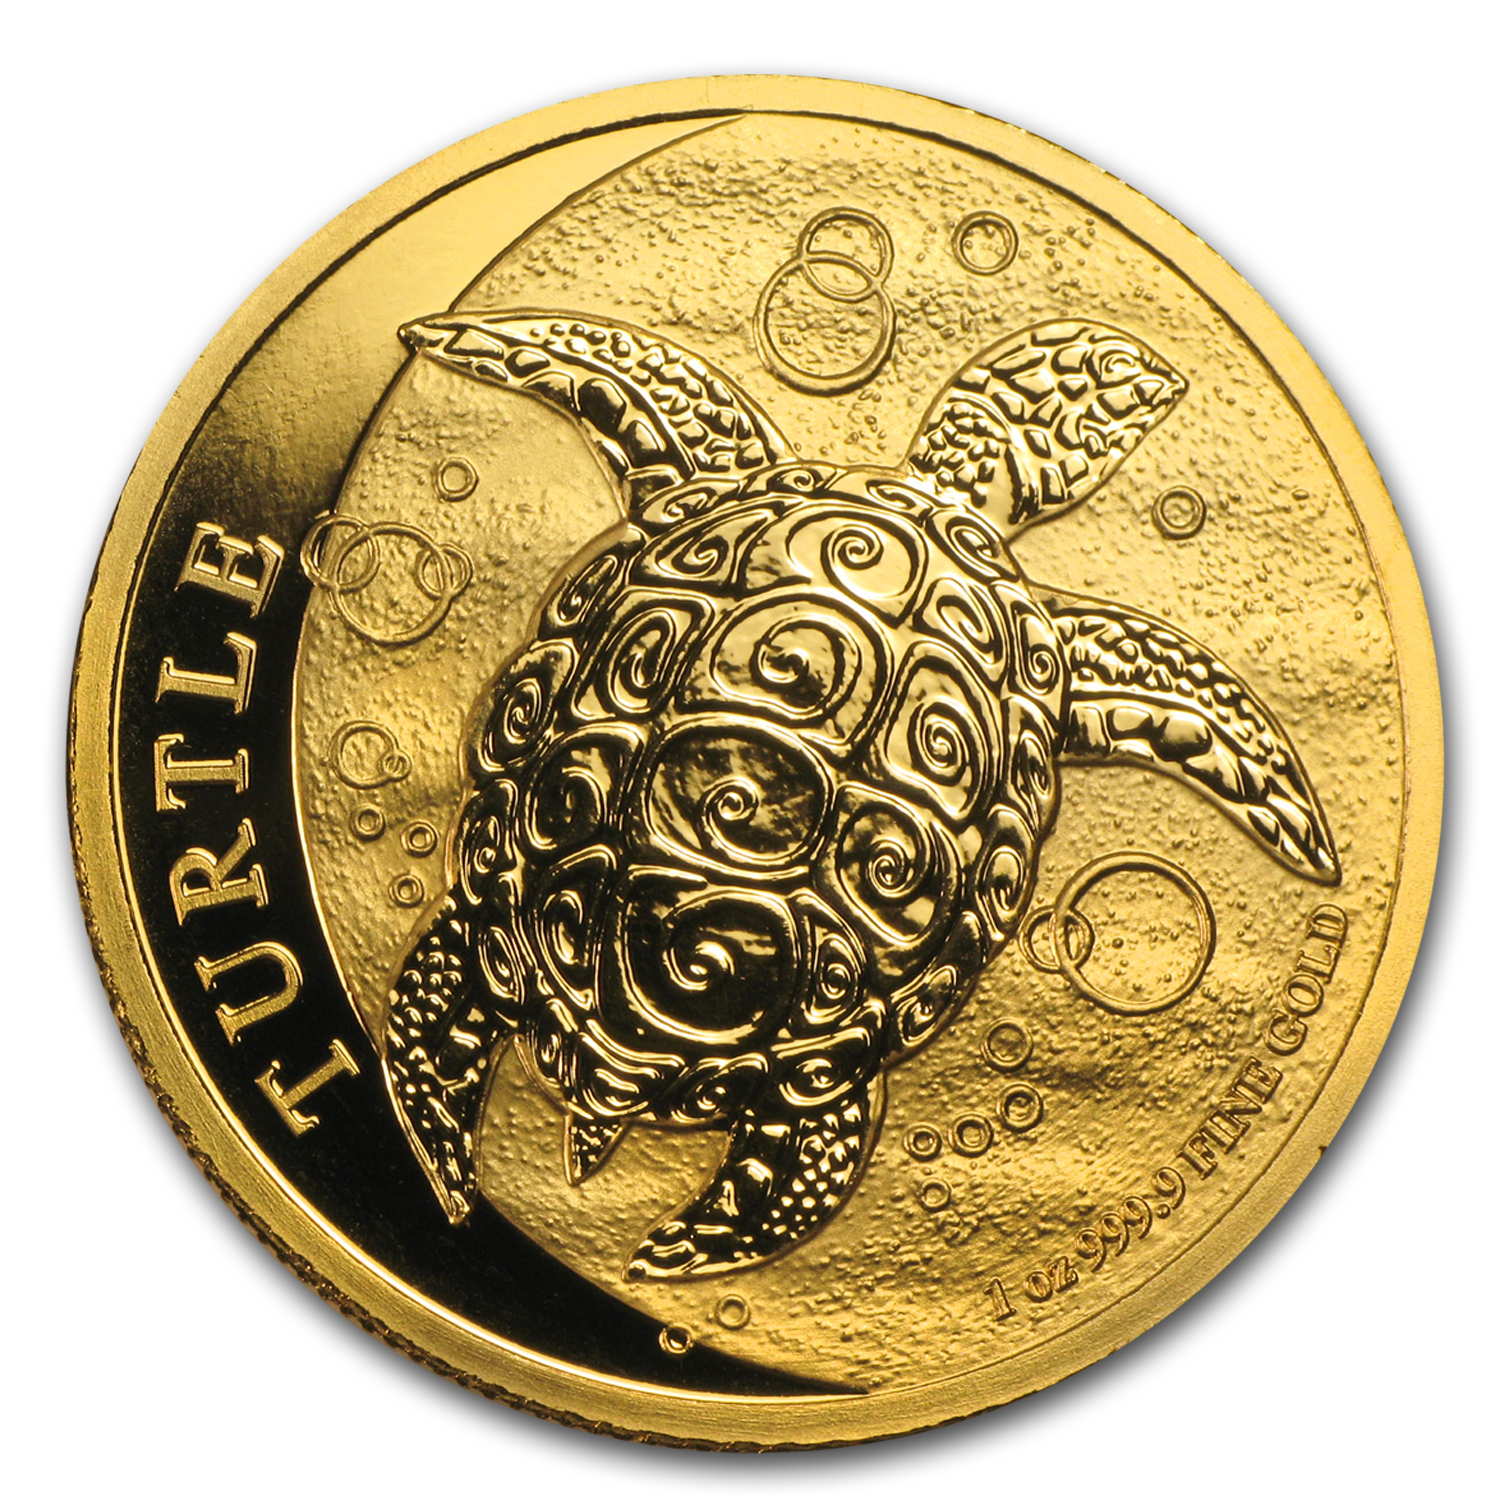 2014 1 oz Gold New Zealand $200 Niue Hawksbill Turtle BU